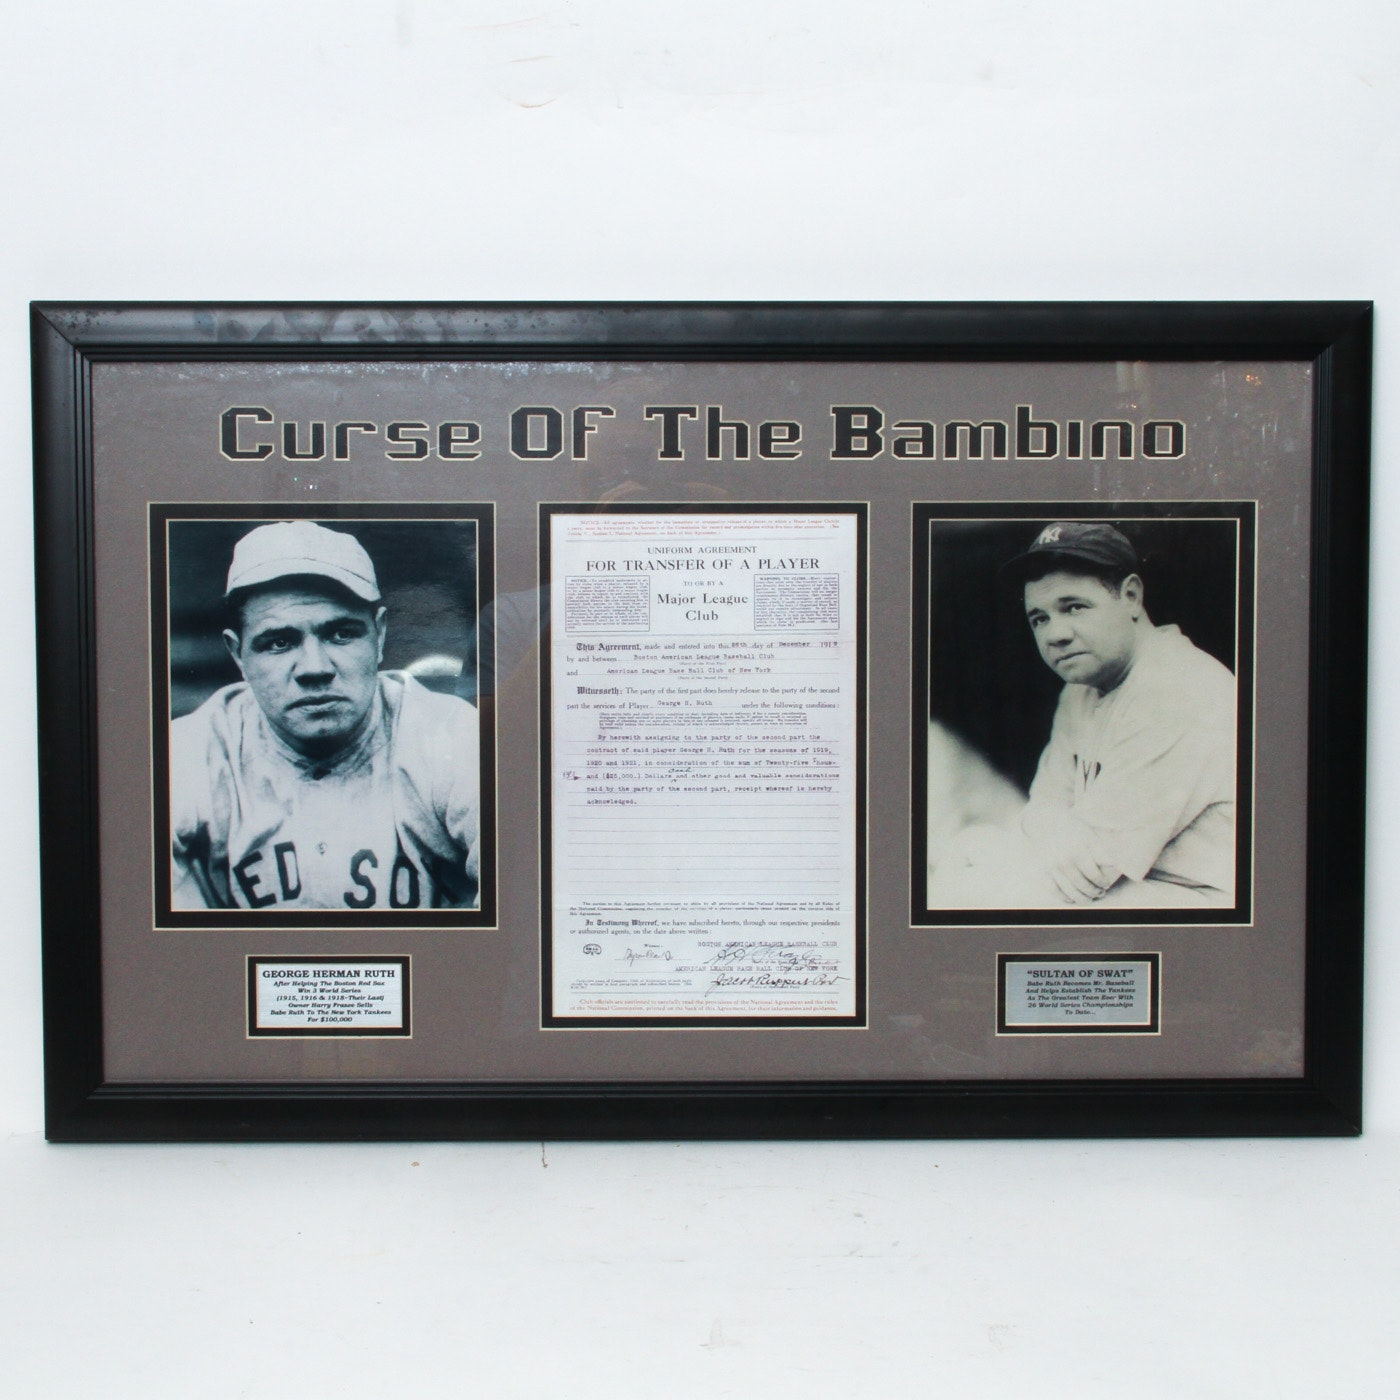 Curse of the Bambino Framed Transfer Agreement and Photos of Babe Ruth Reproduction